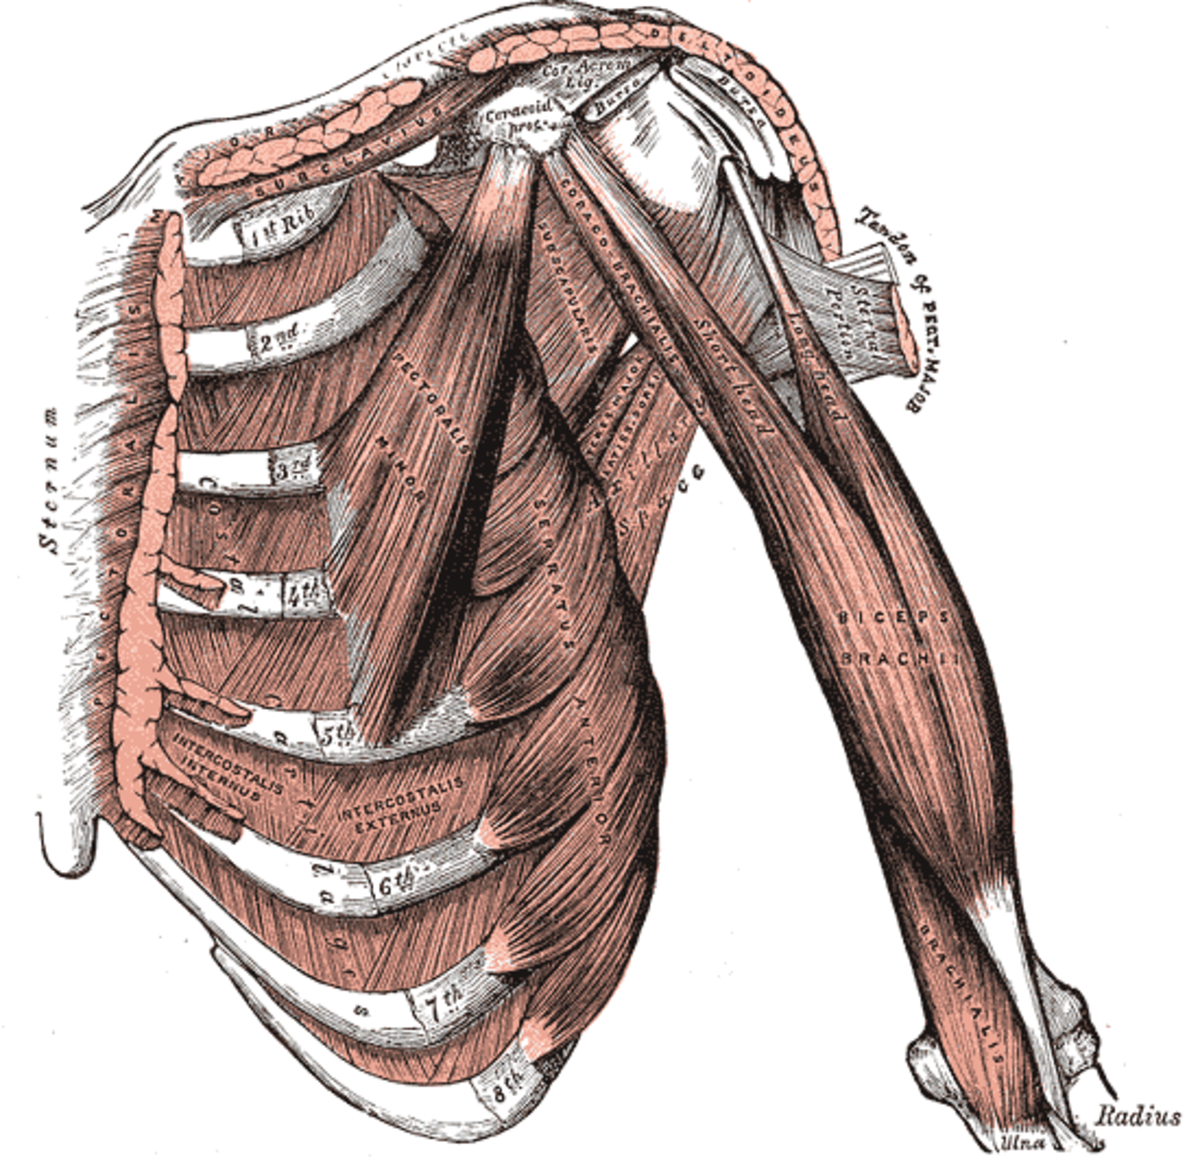 Intercostal muscles go from rib to rib.